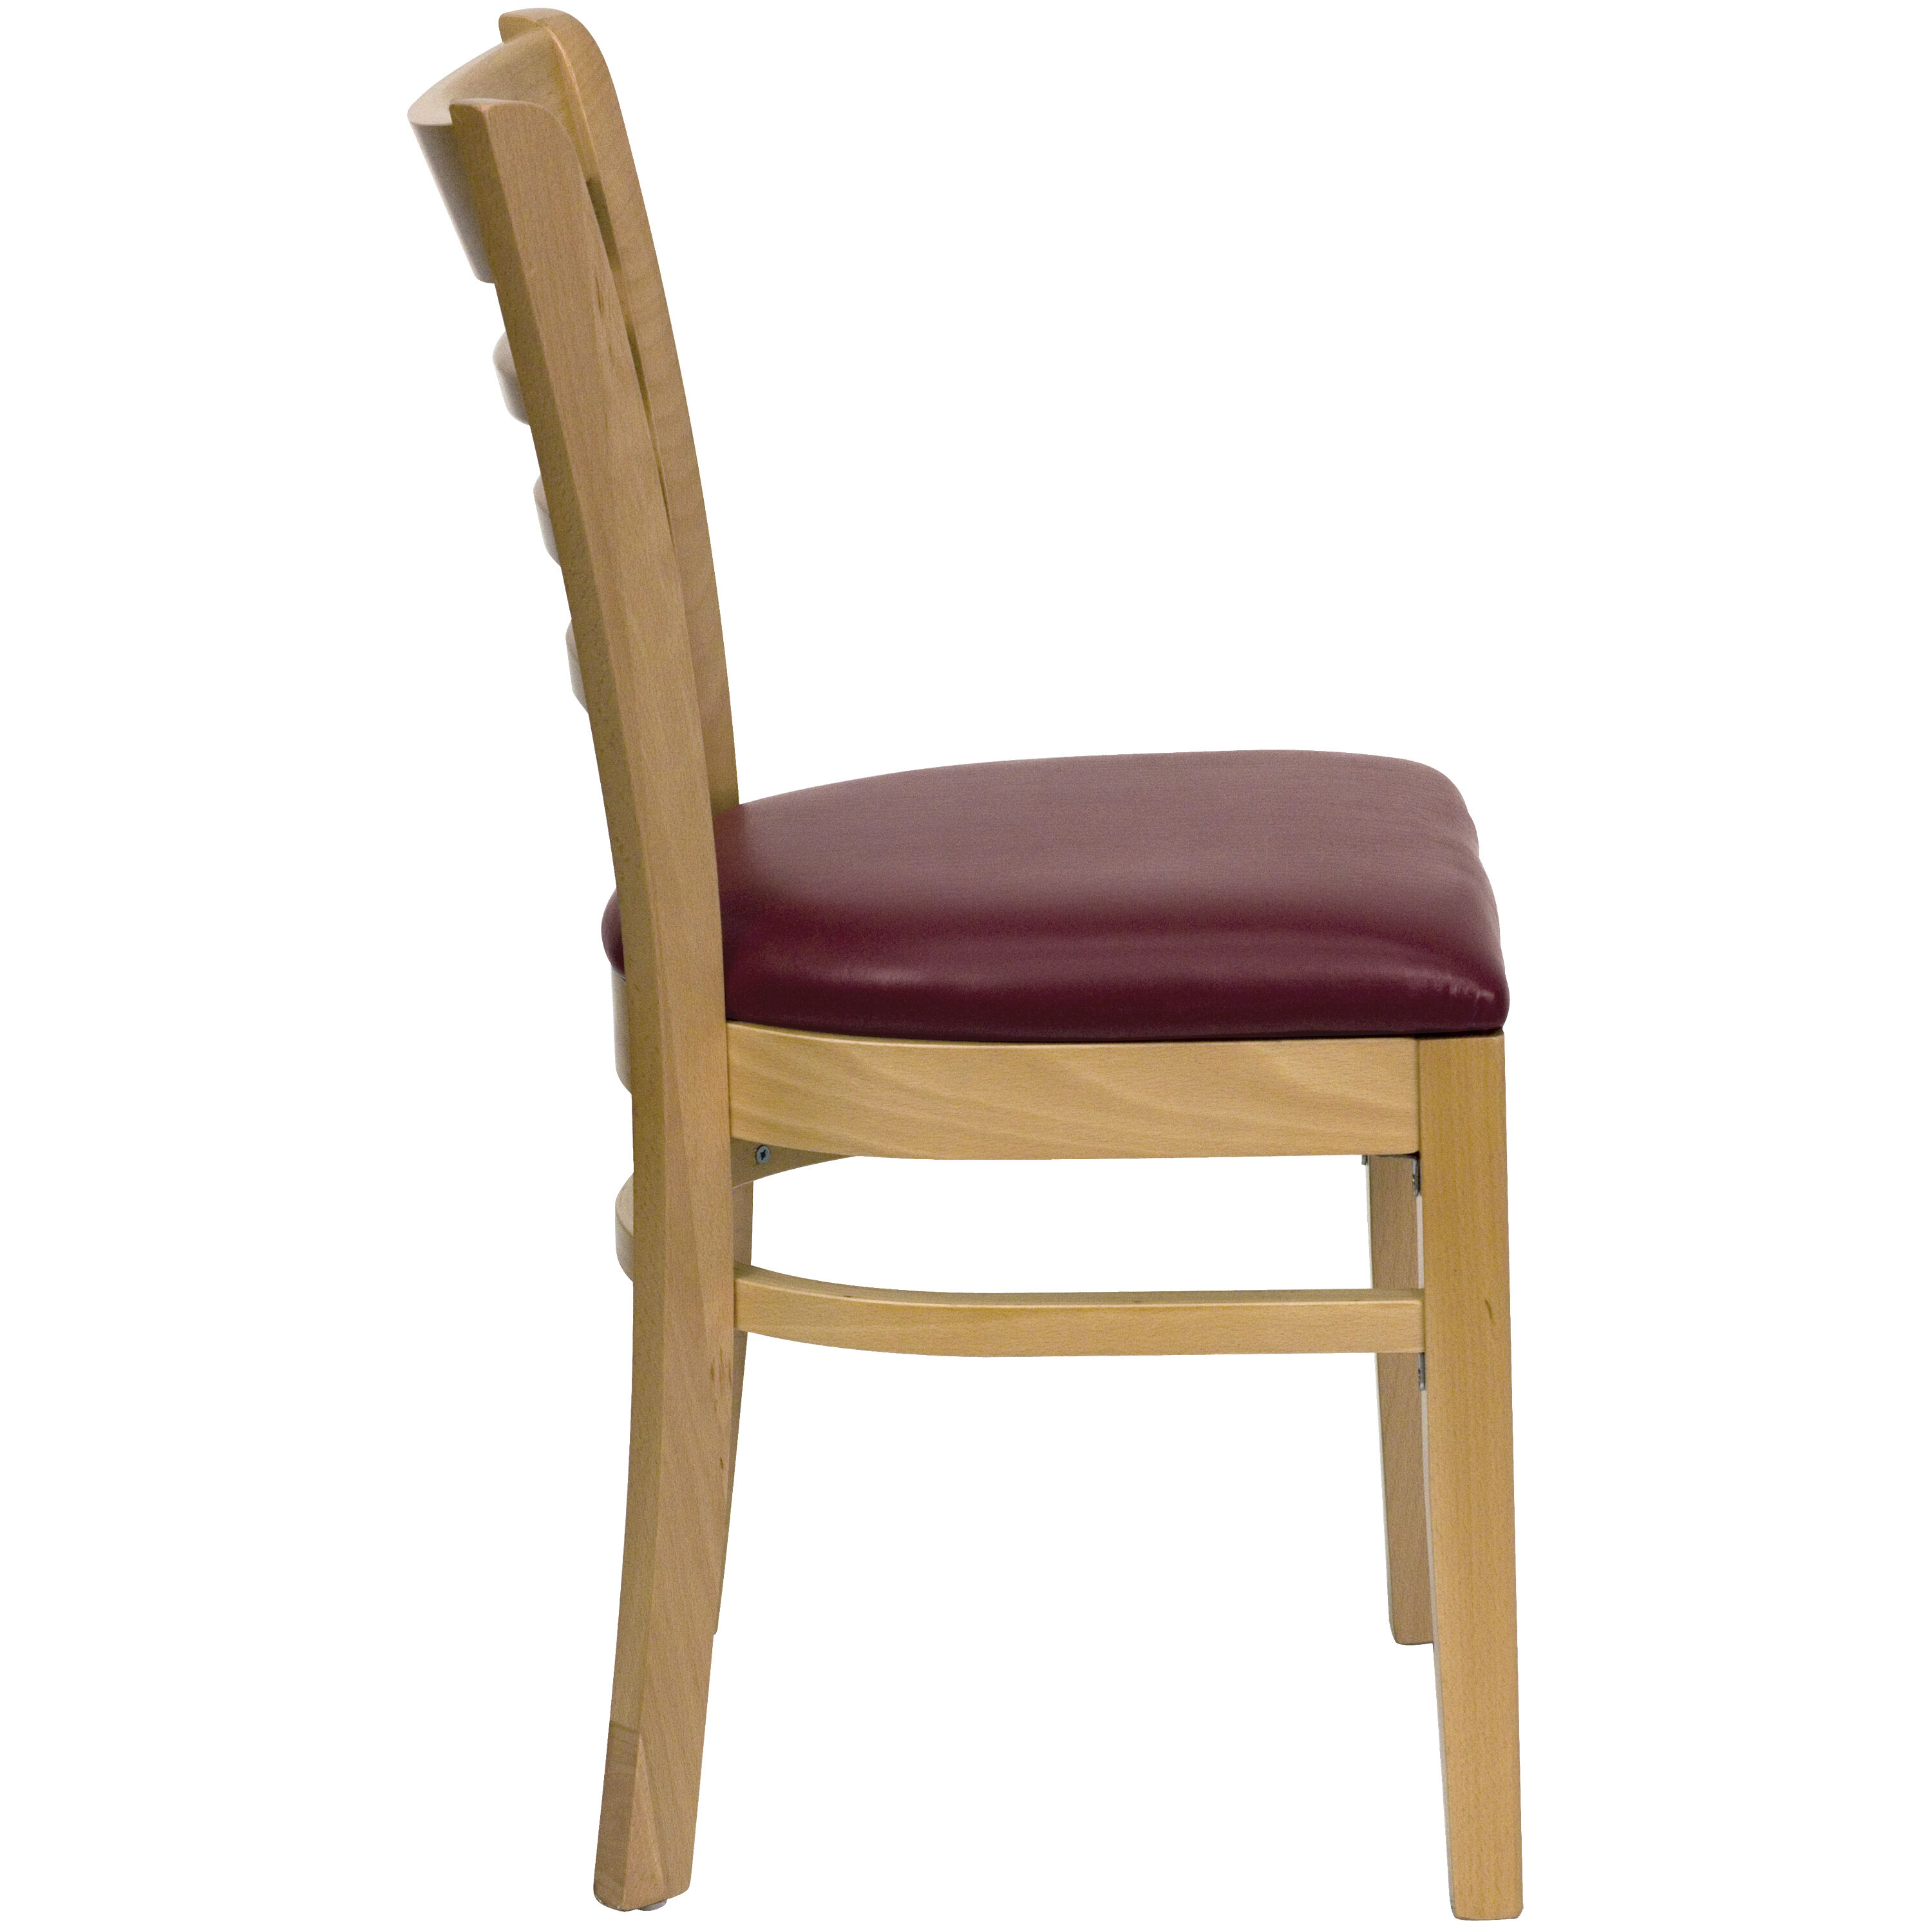 ... Our Natural Wood Finished Ladder Back Wooden Restaurant Chair With  Burgundy Vinyl Seat Is On Sale ...